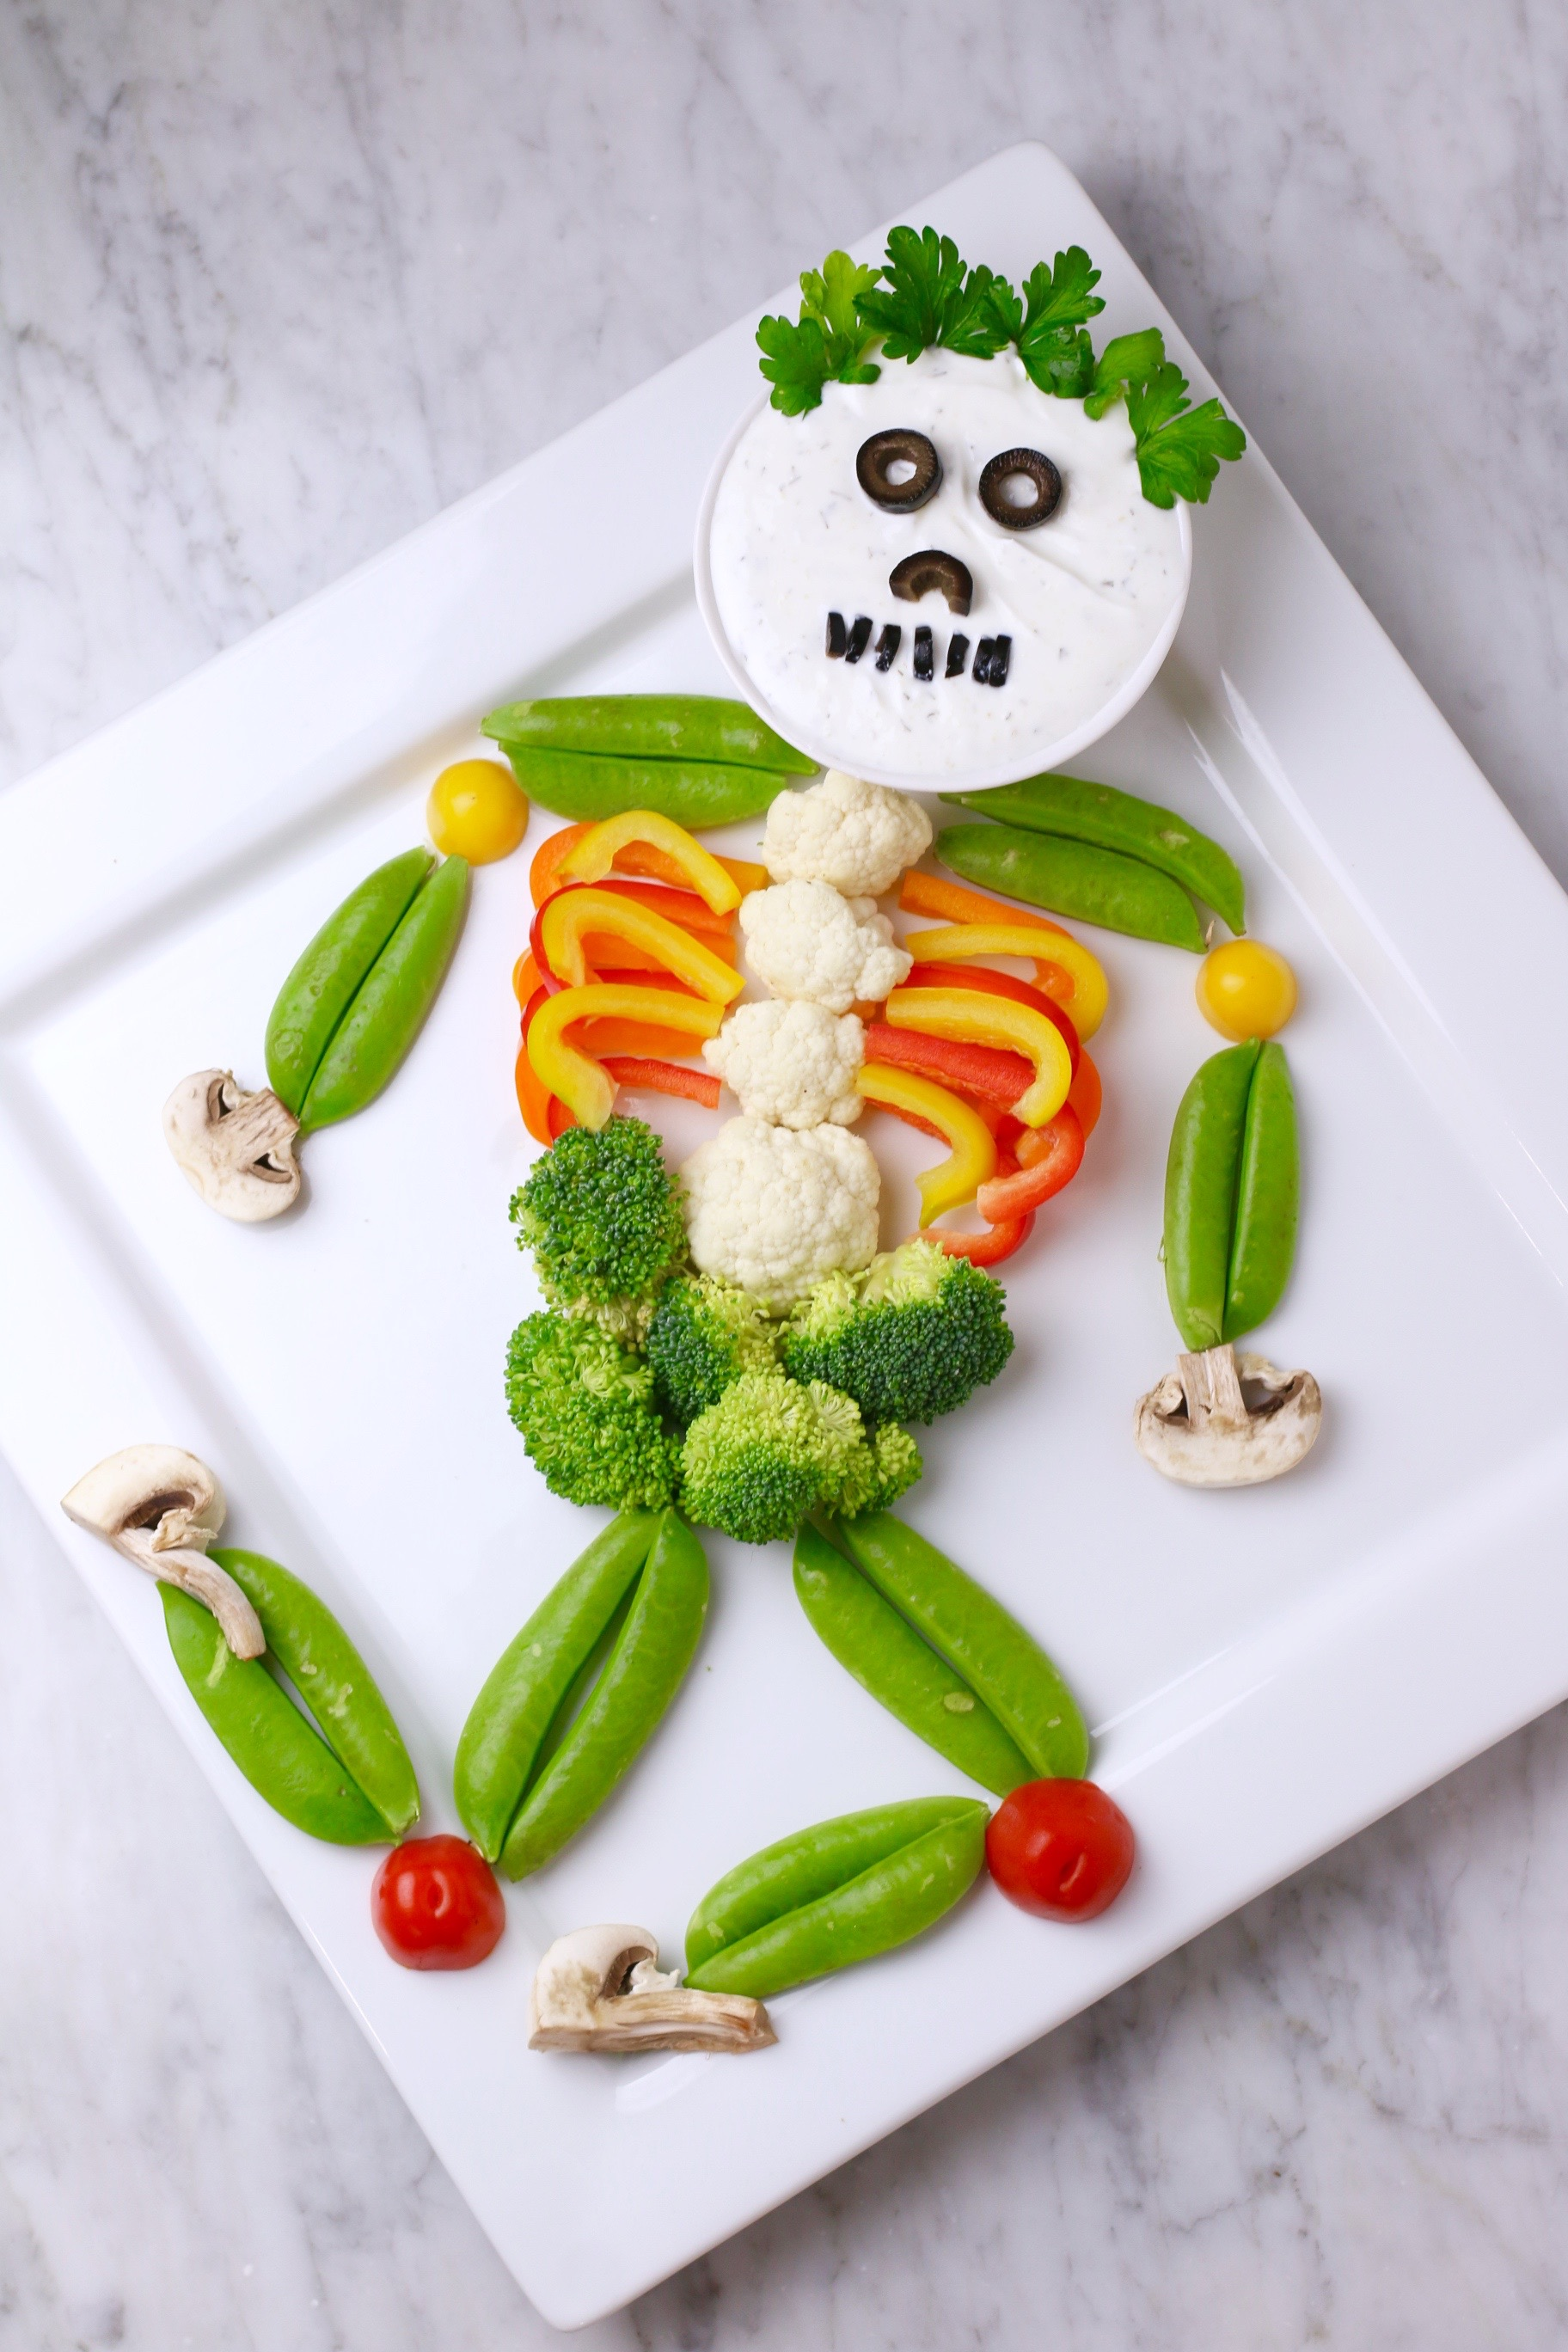 healthy halloween recipes | halloween food ideas - stacey mattinson